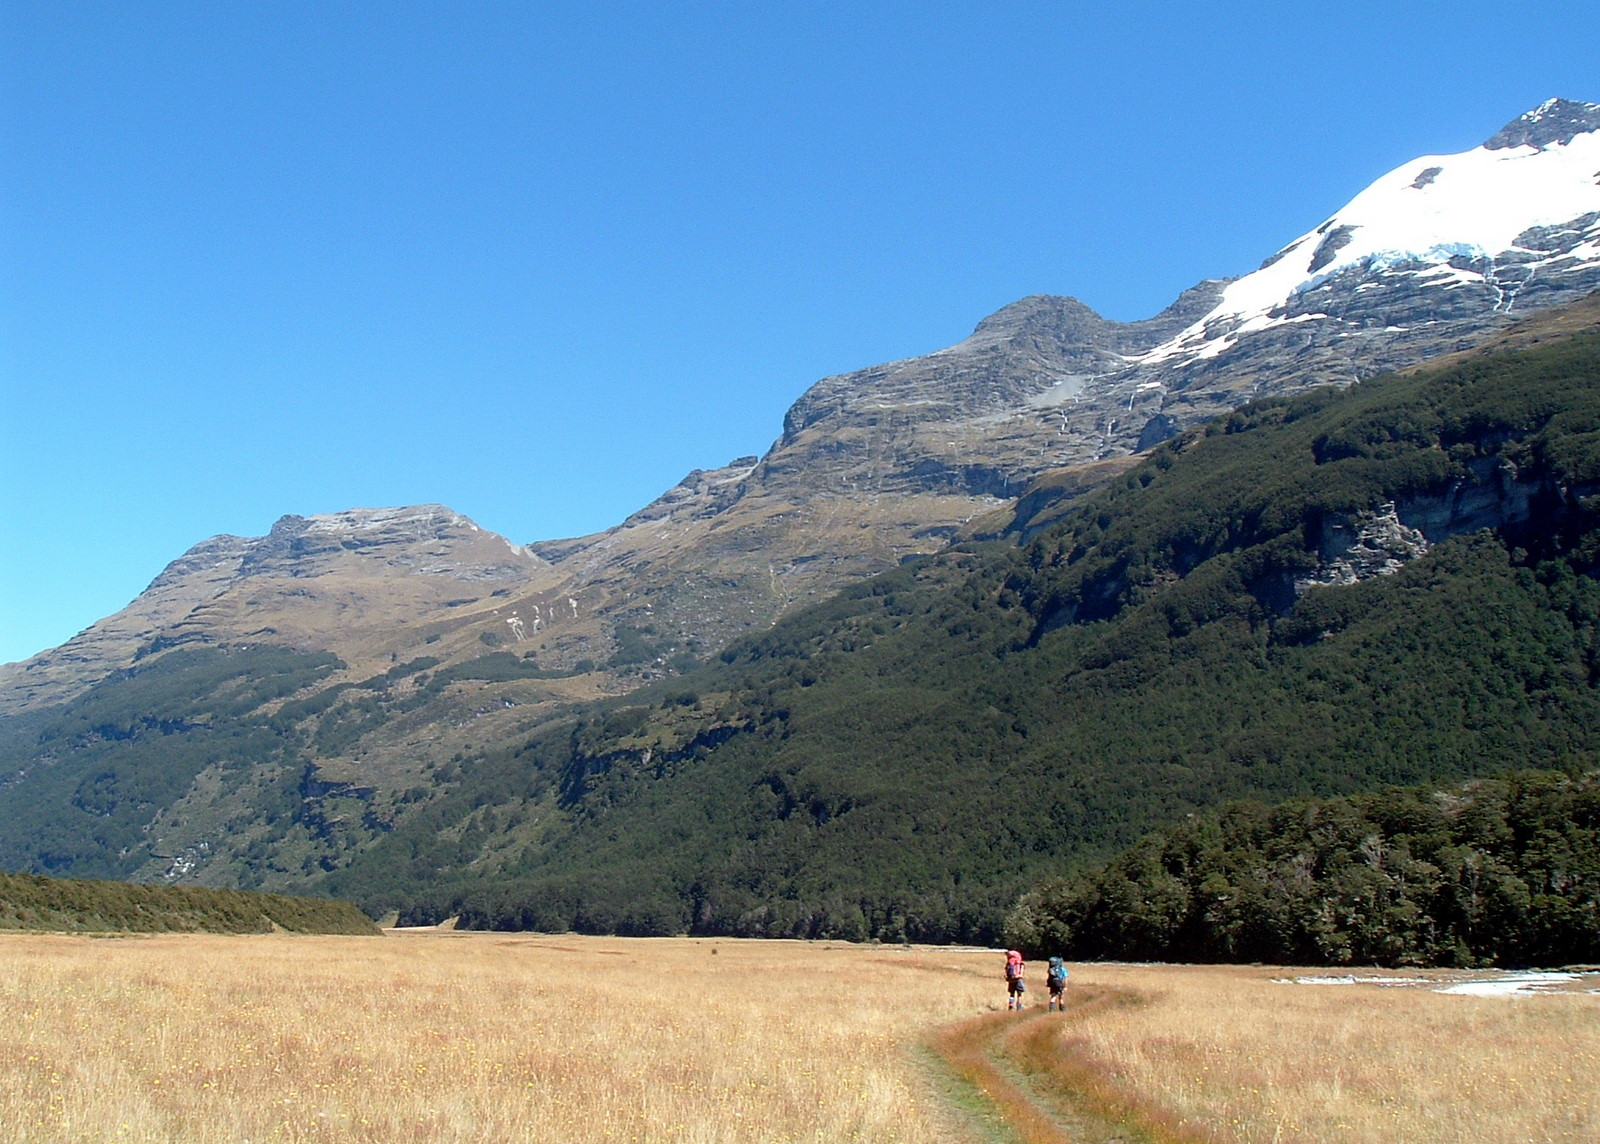 A sundrenched Rees Valley